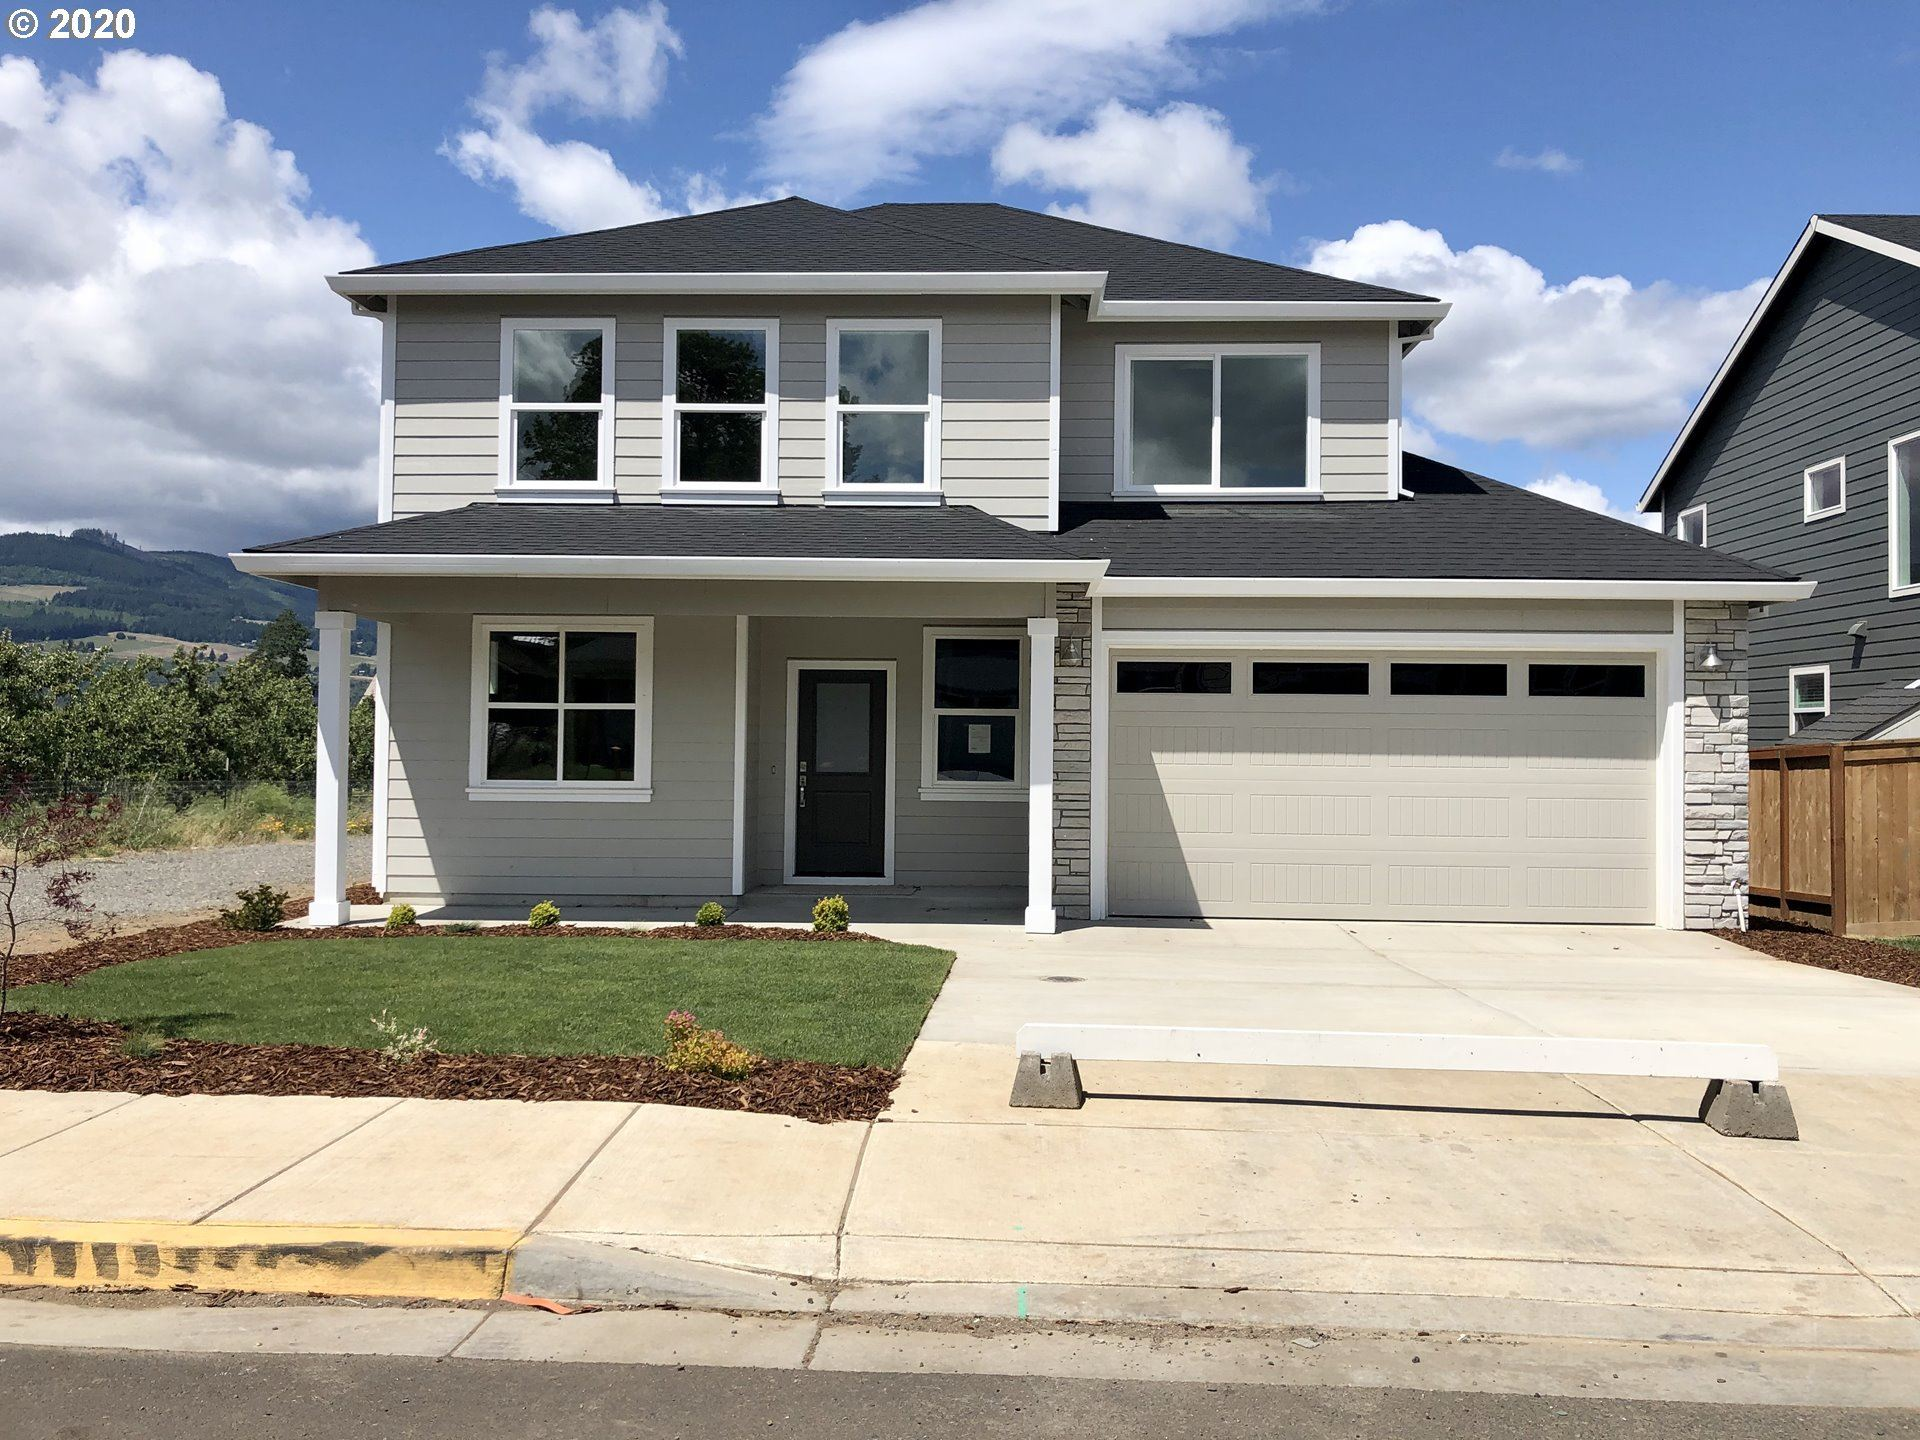 Photo of 2742 Lilly Drive, Hood River, OR 97031 (MLS # 20476523)